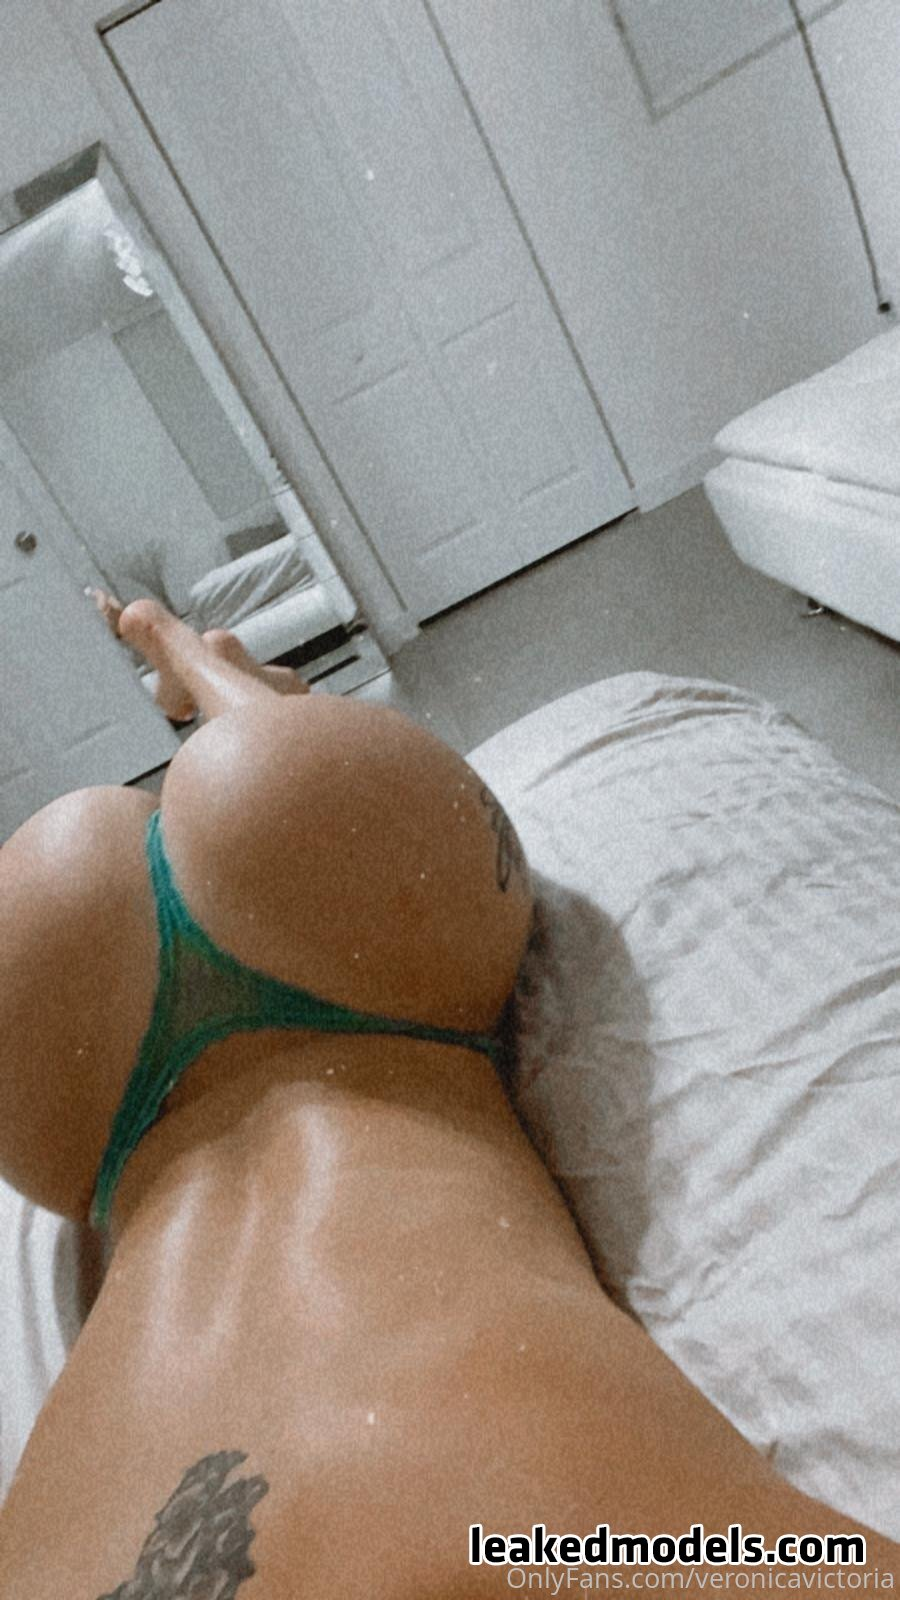 veronica victoria – veronicavip OnlyFans Nude Leaks (31 Photos)